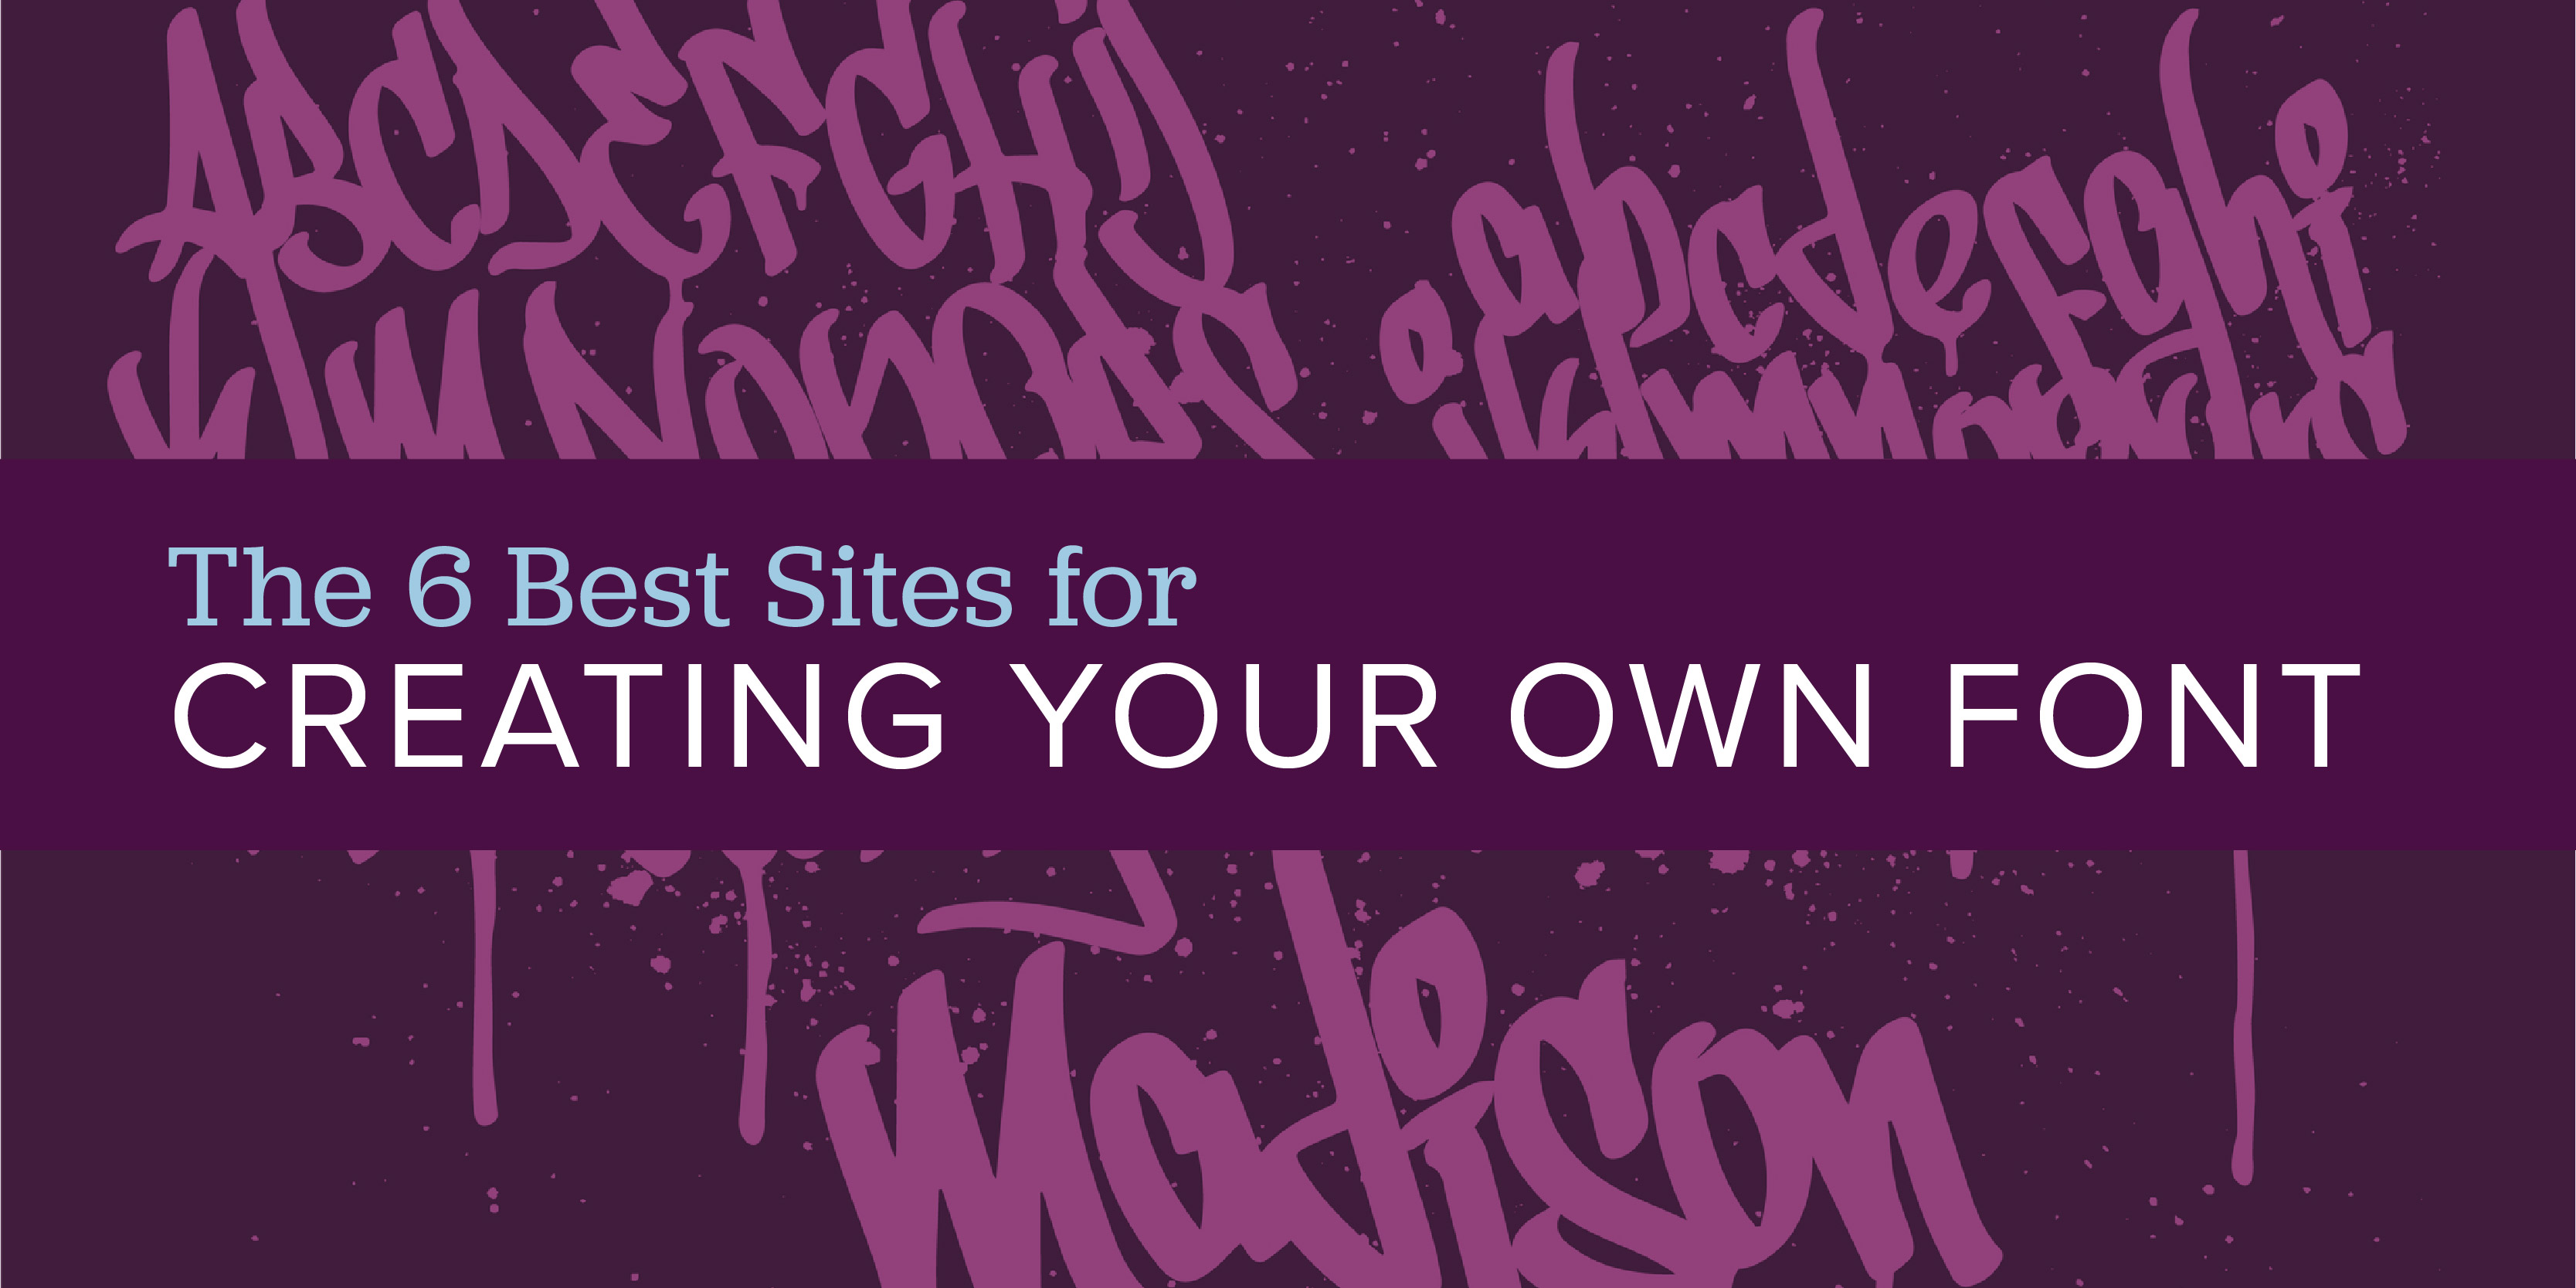 The 6 Best Sites For Creating Your Own Font